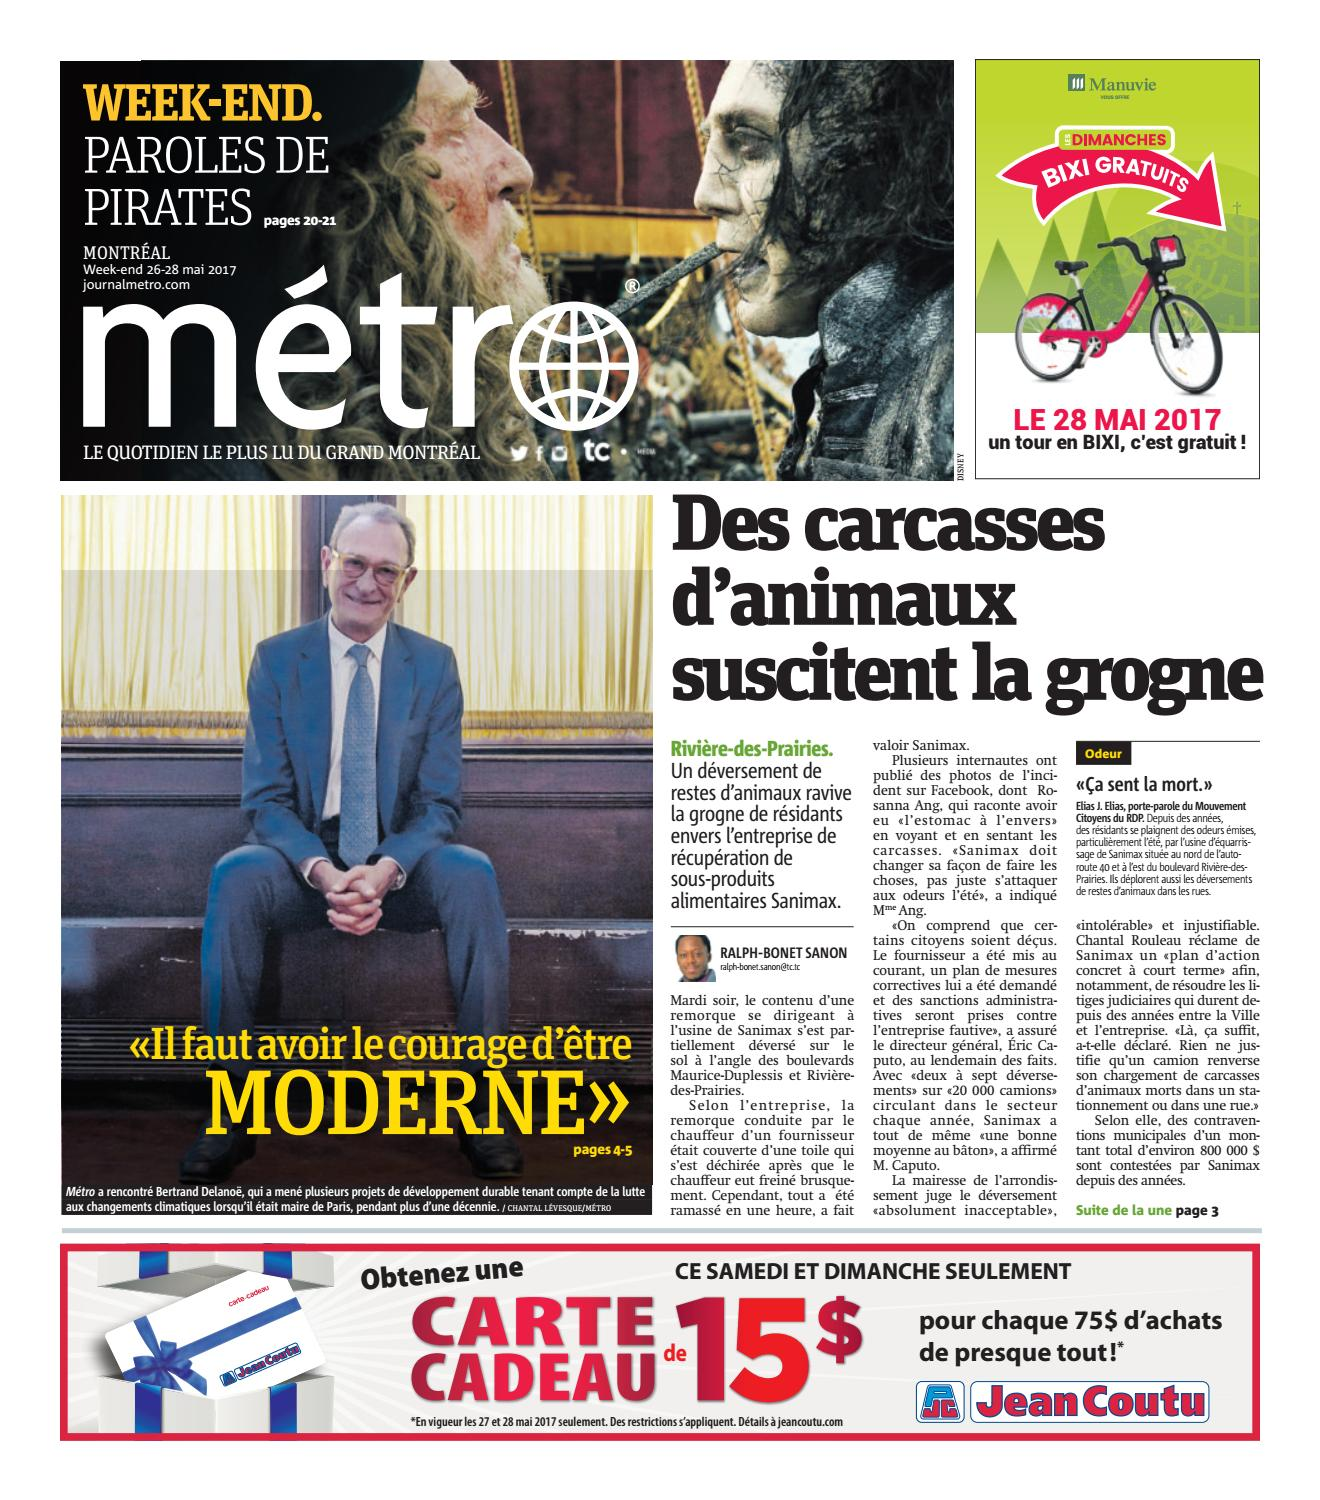 Photo Carte Assurance Maladie Jean Coutu.Montreal 26 05 2017 By Metro Canada Issuu